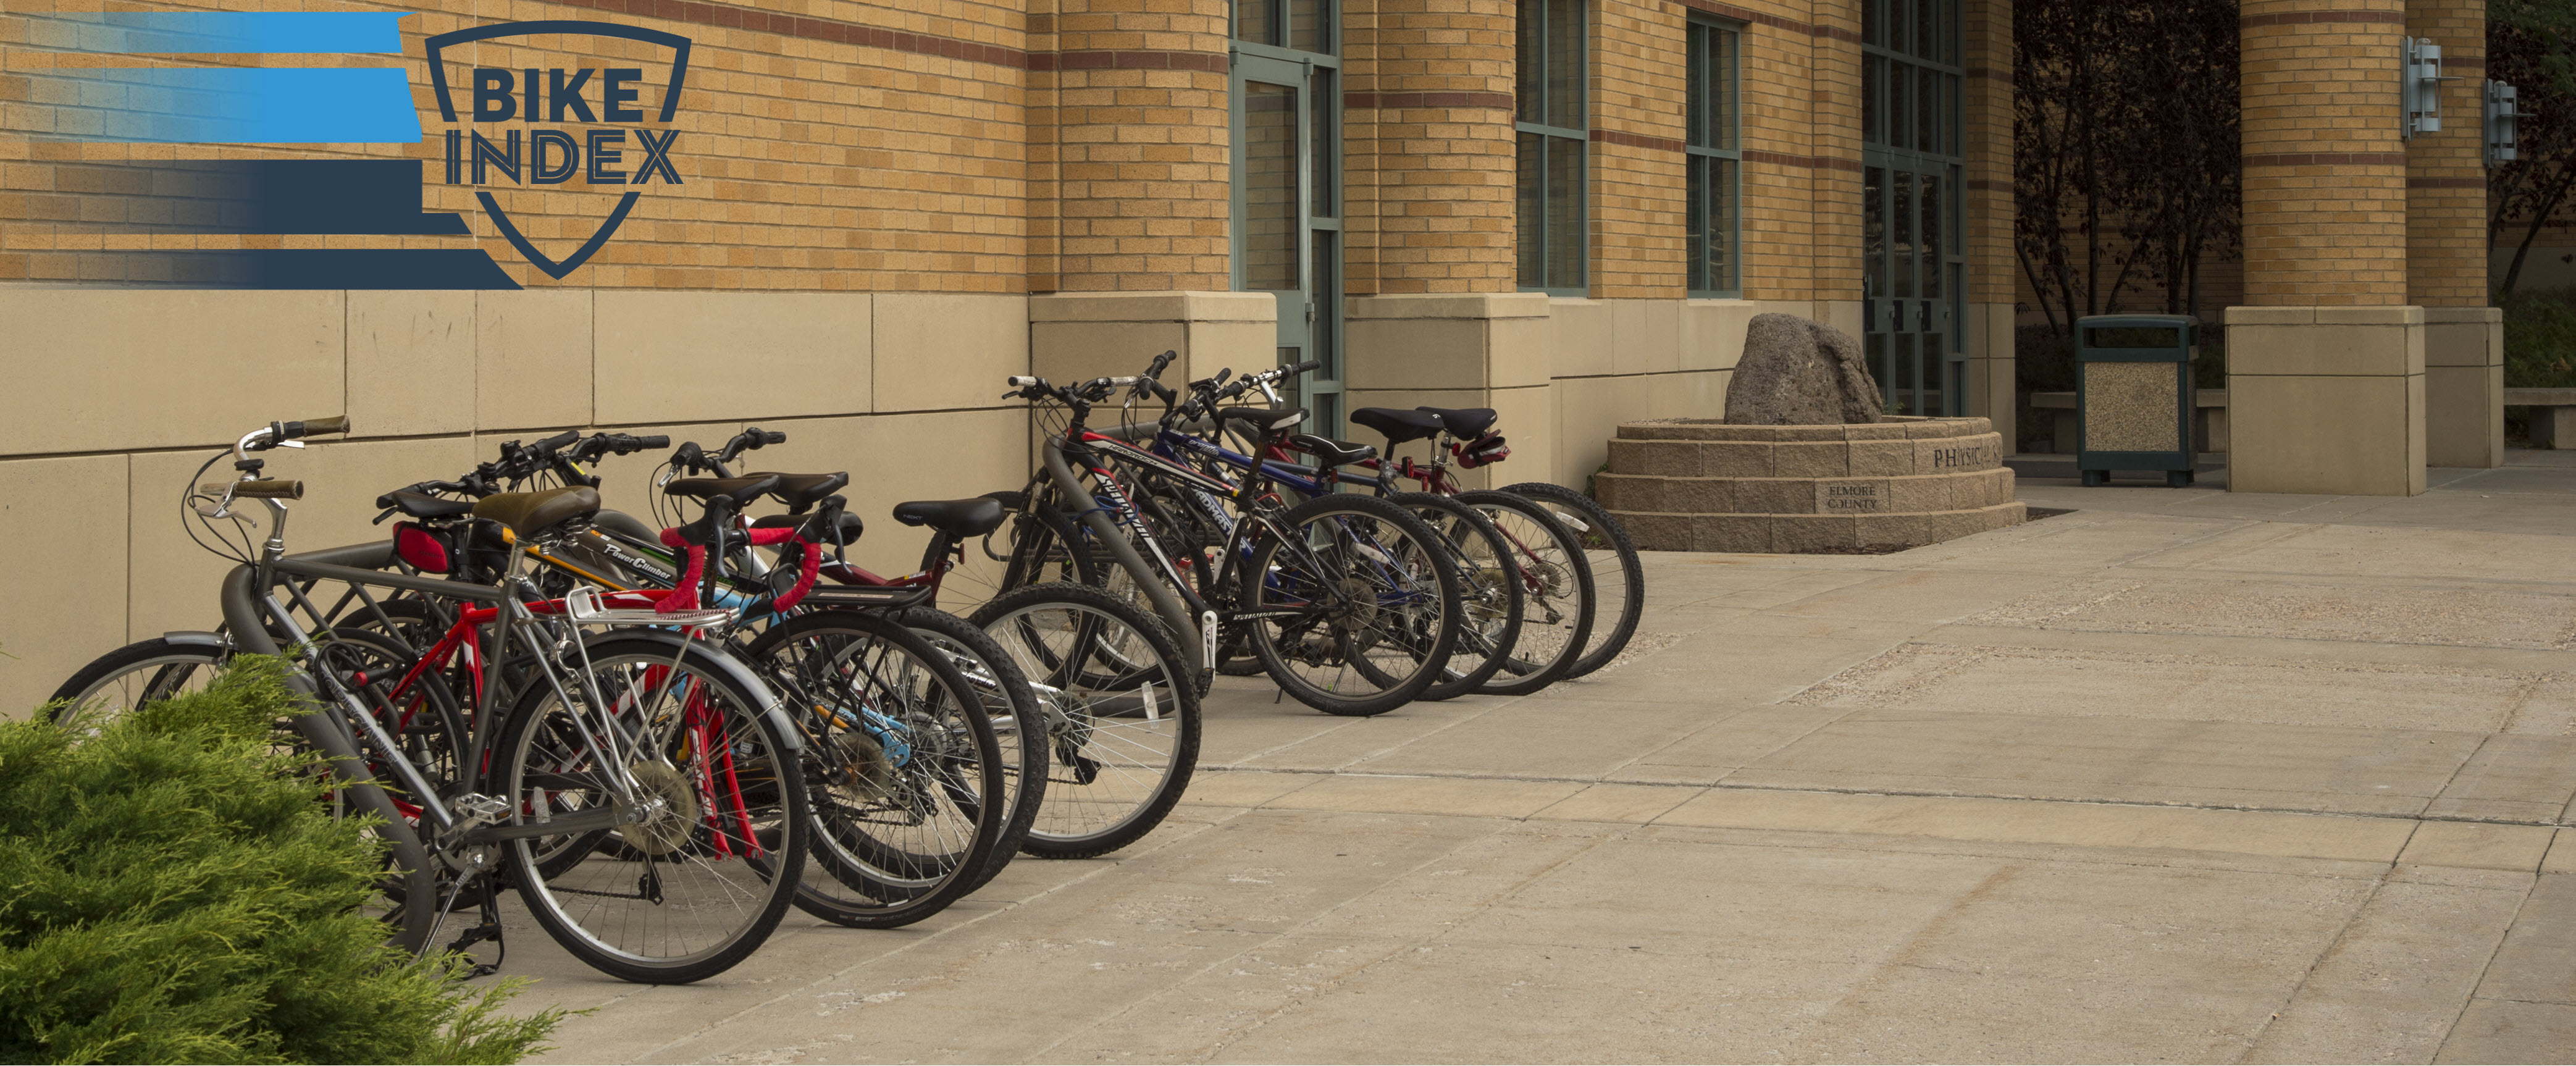 Bikes Outside Physical Science Building with Bike Index Logo